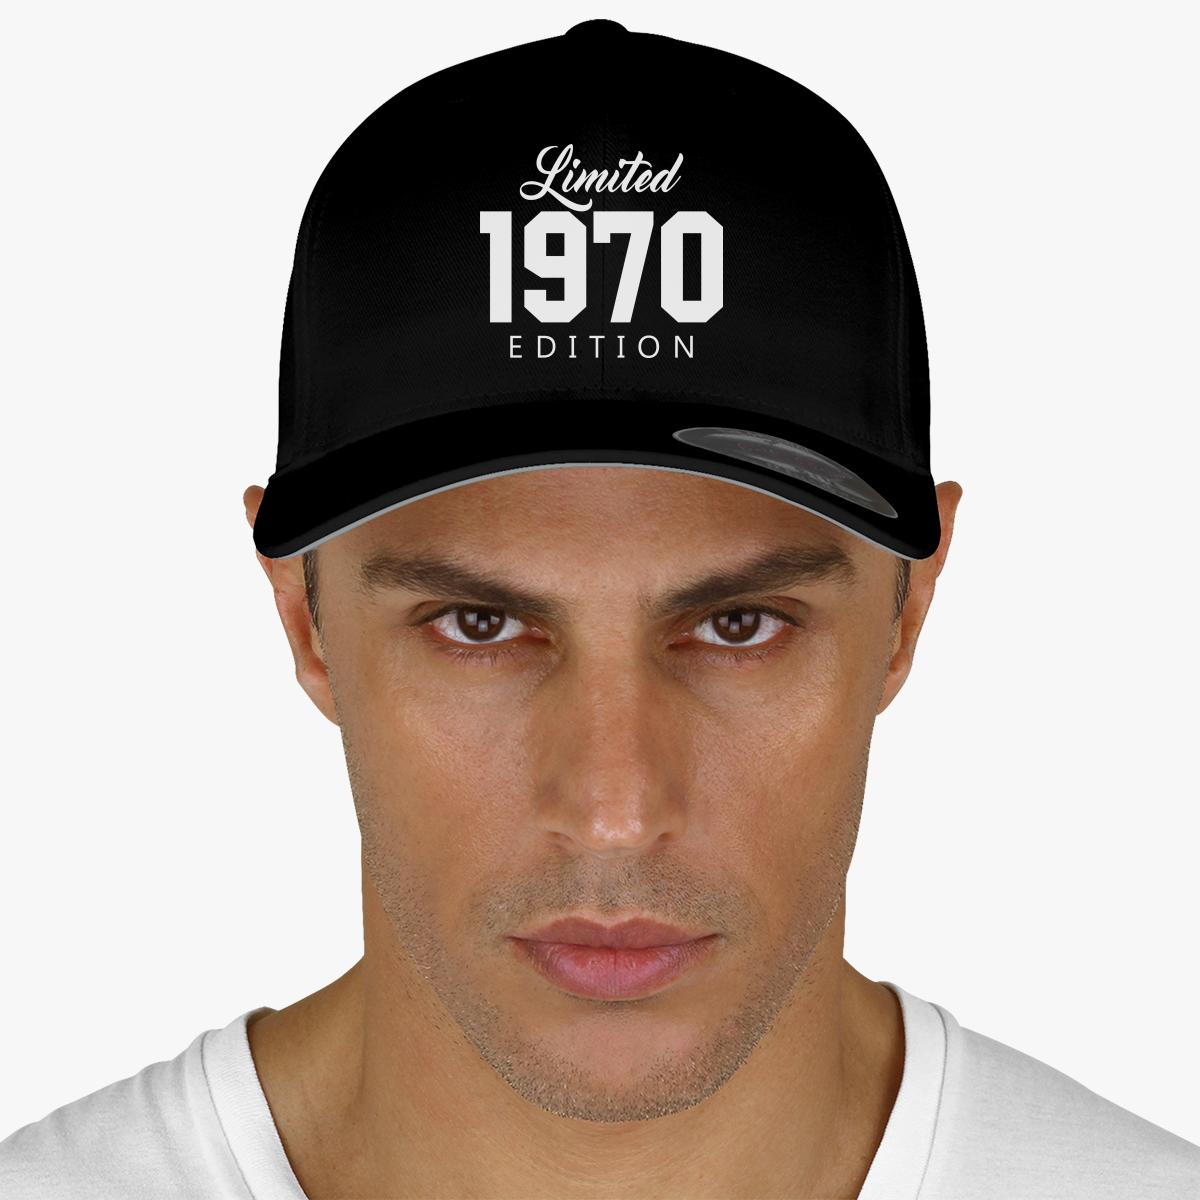 1970 Limited Edition Birthday Embroidered Baseball Cap